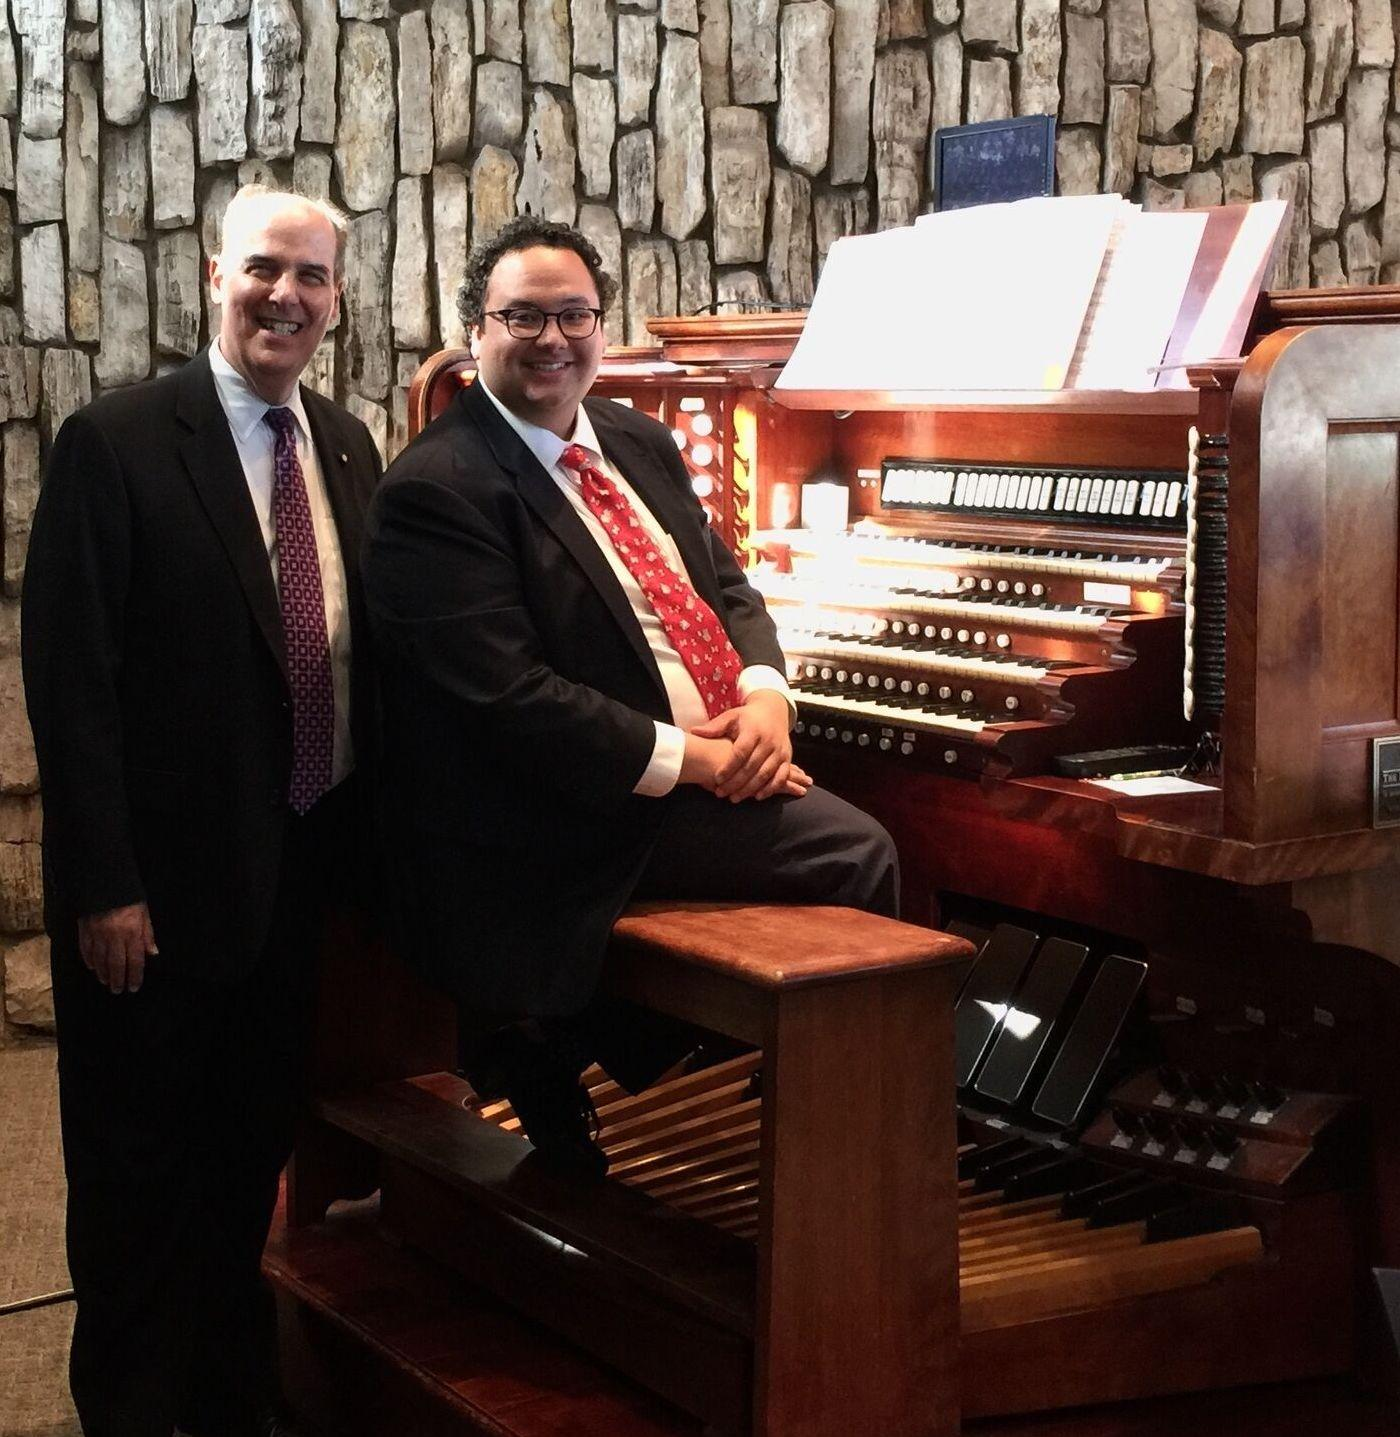 The organists of christ cathedral tickets in garden grove 13280 chapman ave garden grove ca 92840